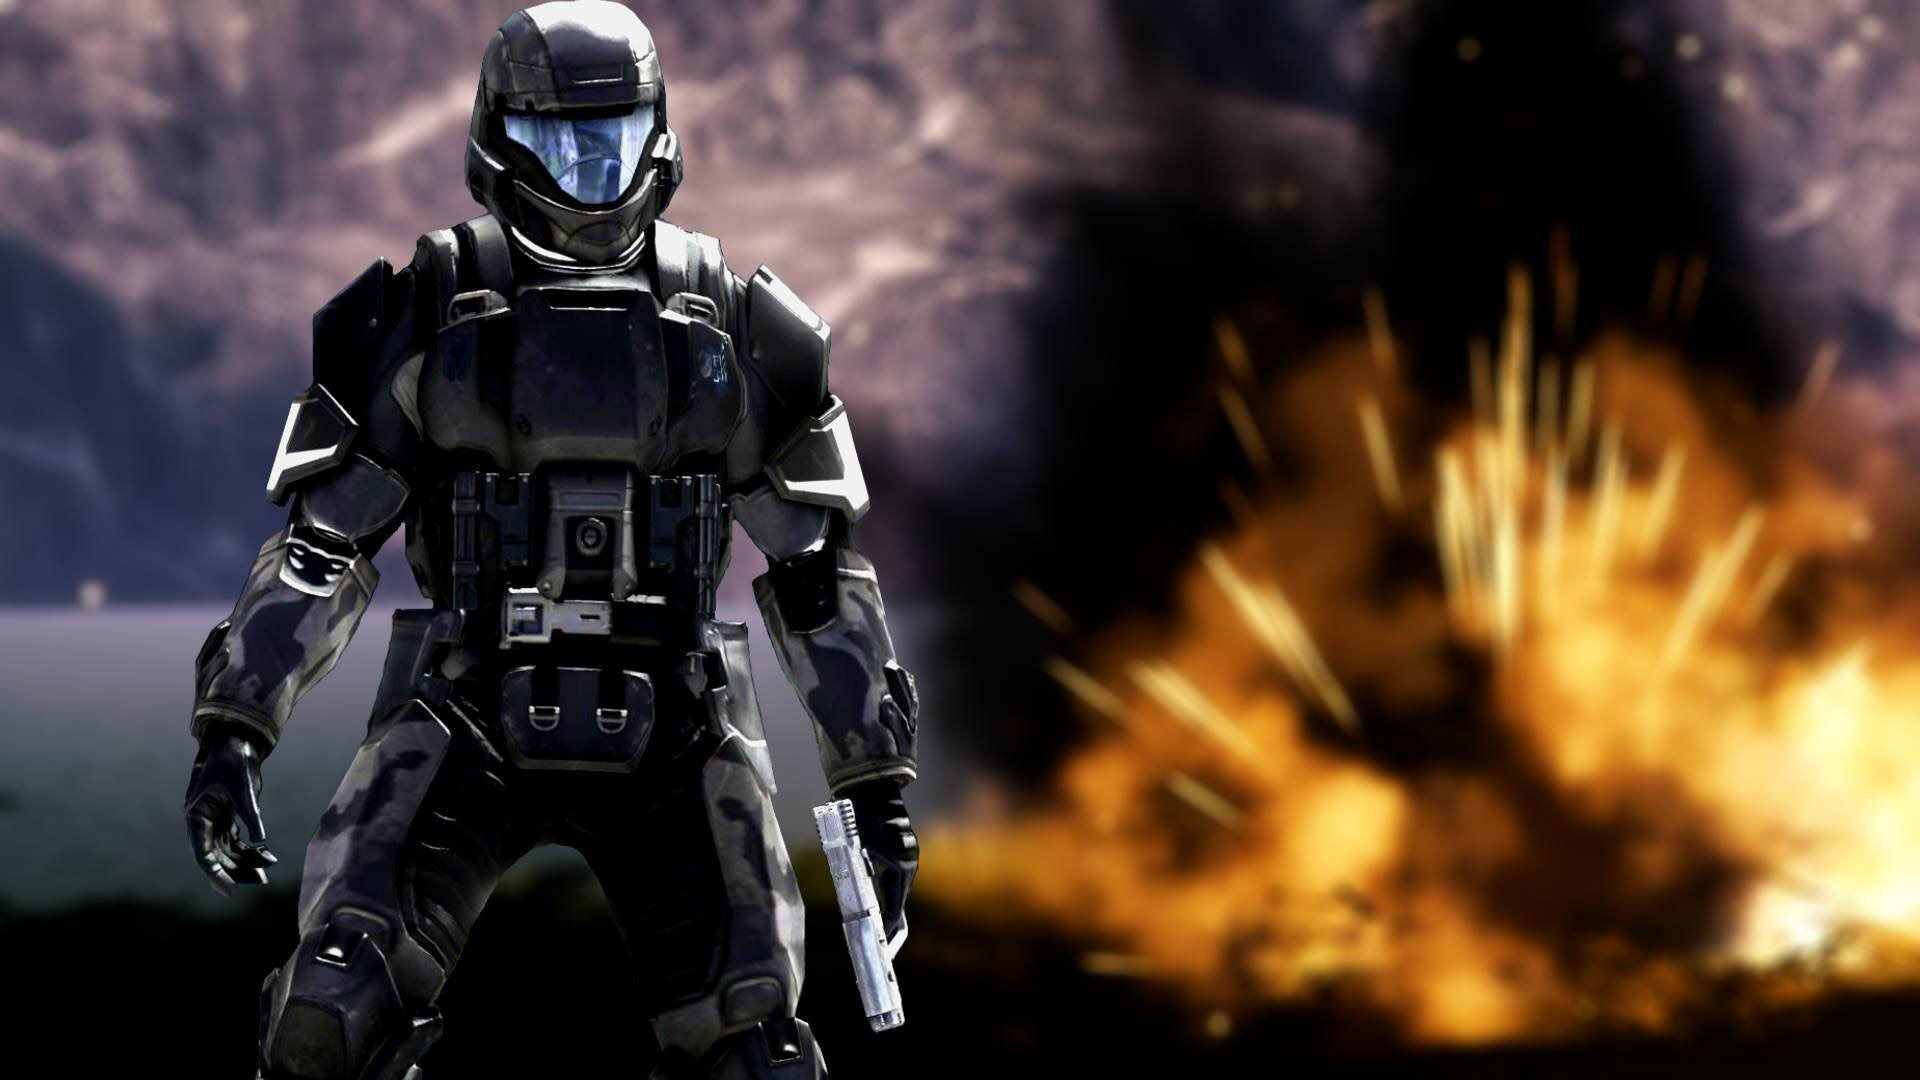 Master chief full hd quality wallpapers archive wallpapers hd master chief full hd quality wallpapers archive wallpapers voltagebd Choice Image